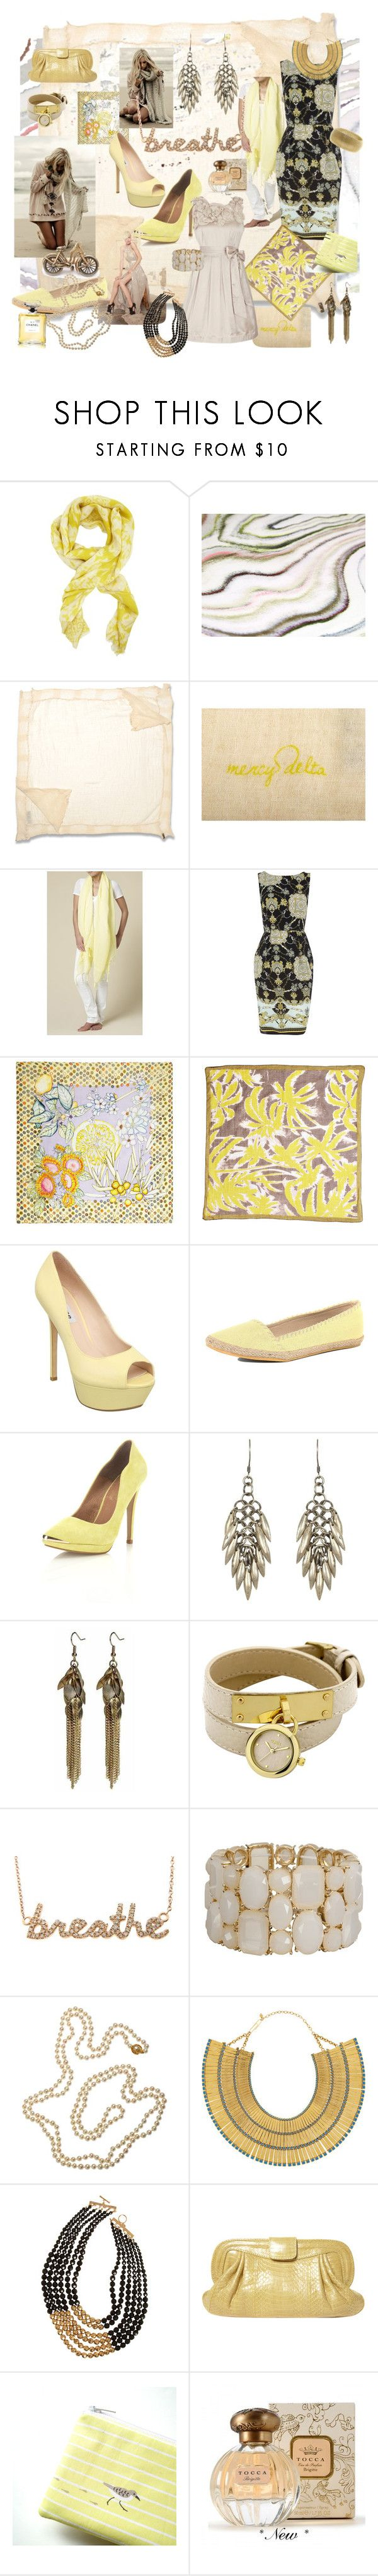 """""""Breathe"""" by gaelrs ❤ liked on Polyvore featuring BCBGMAXAZRIA, Paul Smith, Diesel, Mercy Delta, Dorothy Perkins, Swash, Zuhair Murad, Épice, Dune and Miss Selfridge"""